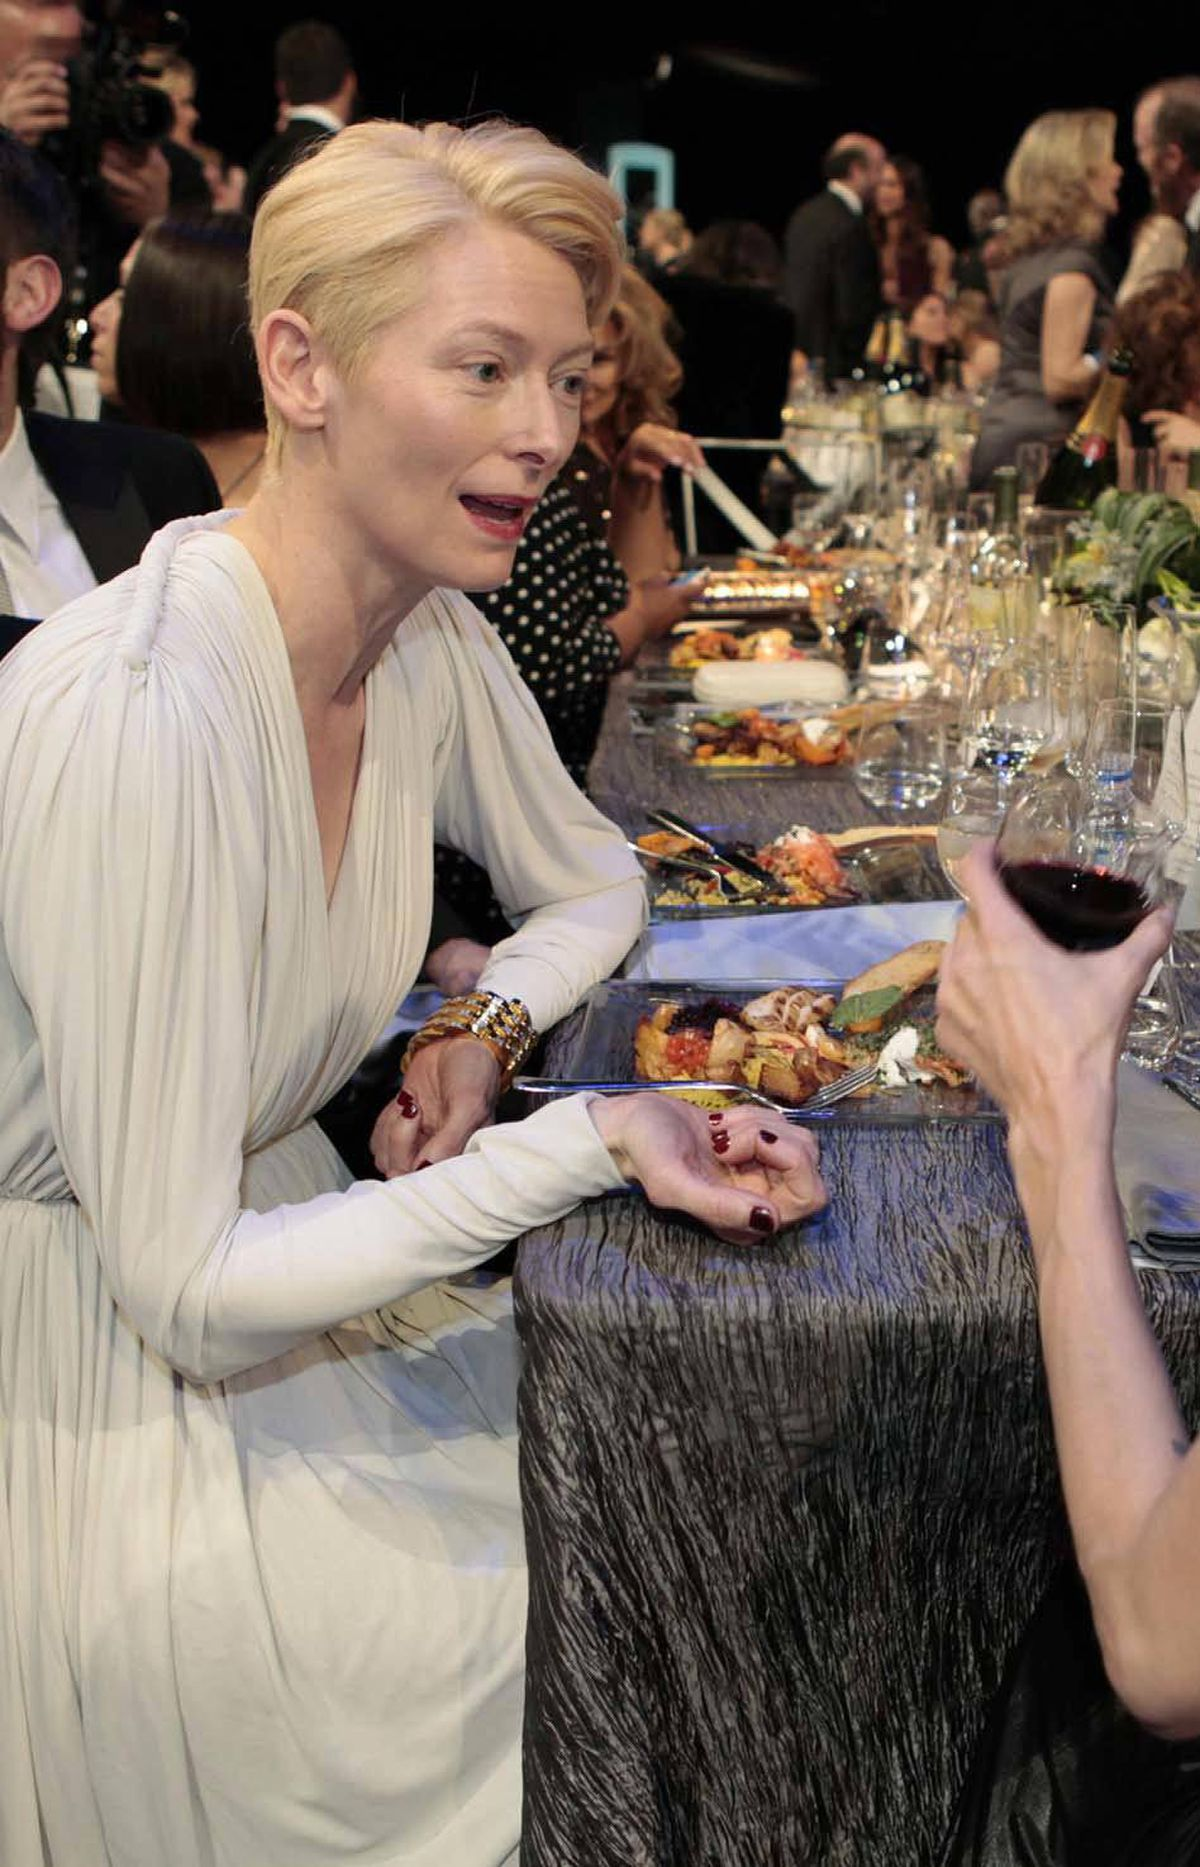 Tilda Swinton, seen here chatting with Angelina Jolie at the SAG awards Sunday, wore a gown made from the pure driven snows of the Alberta boreal forest.